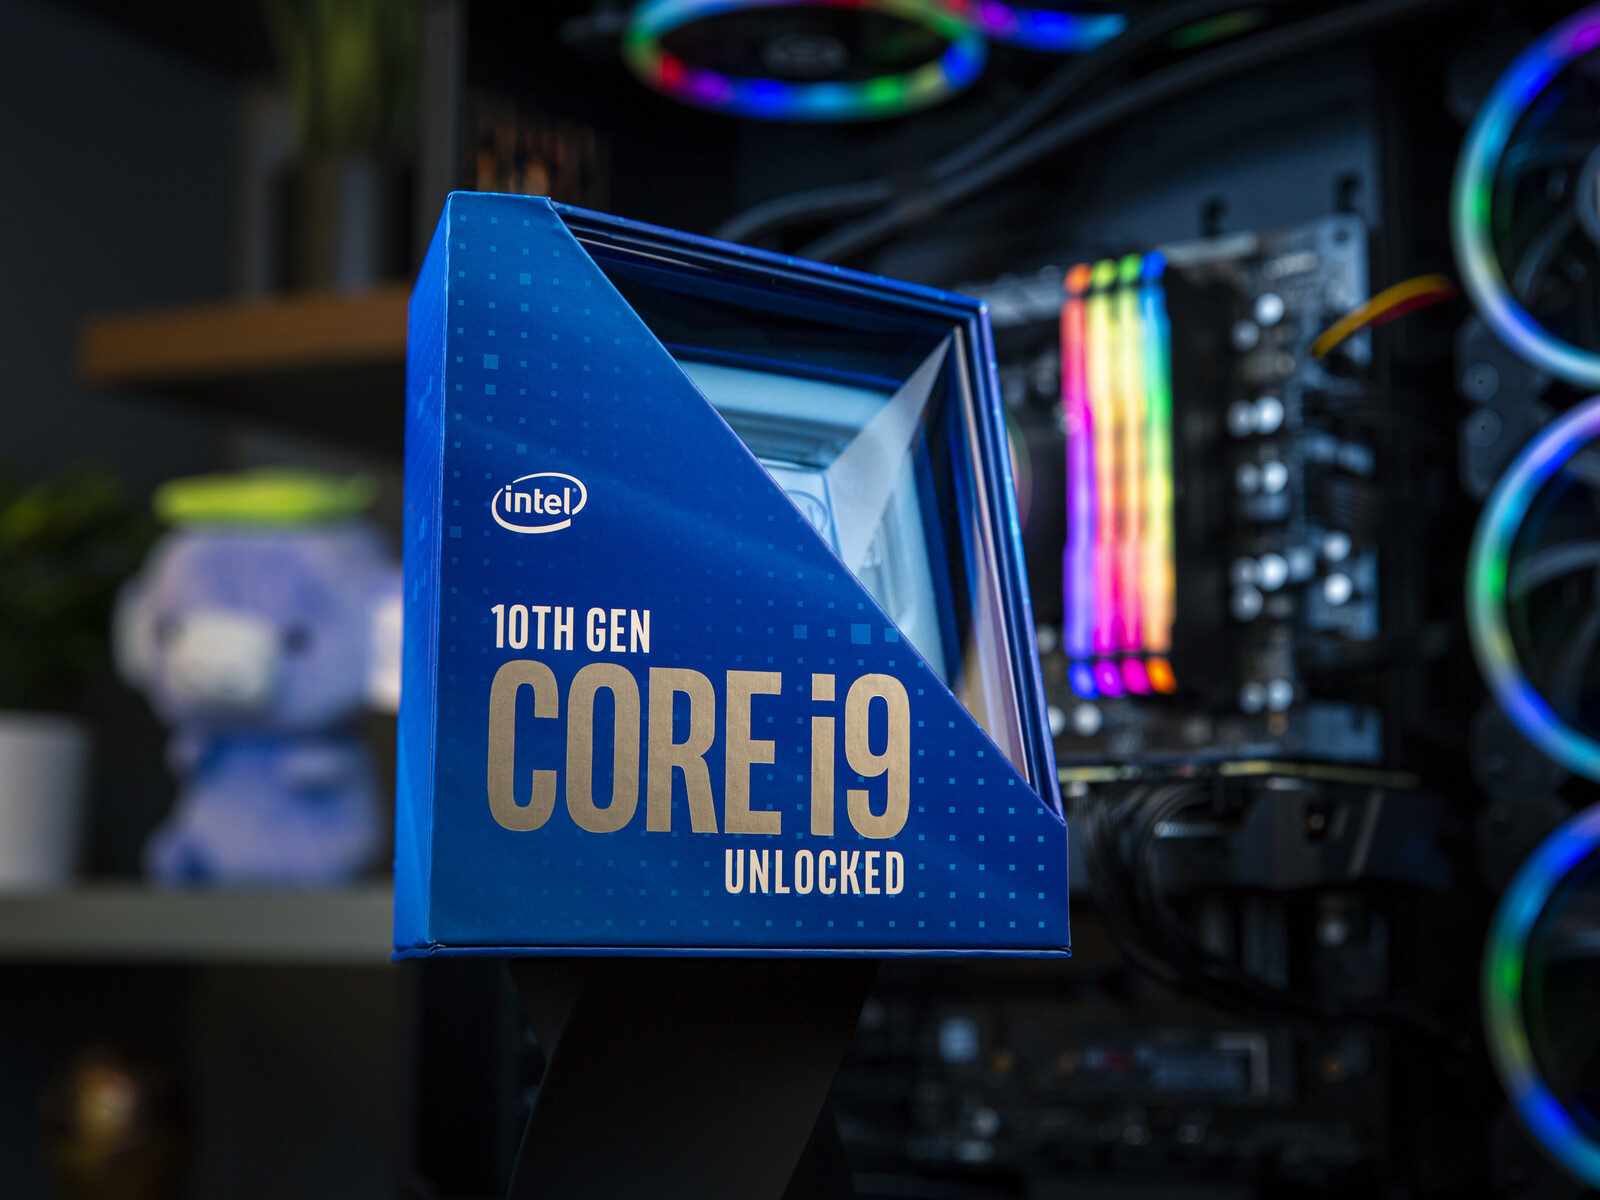 Intel Rocket Lake-S price leak indicates Core i9-11900K to be 10% cheaper than Core i9-10900K and close to Ryzen 7 5800X, but lack of MSRP info makes